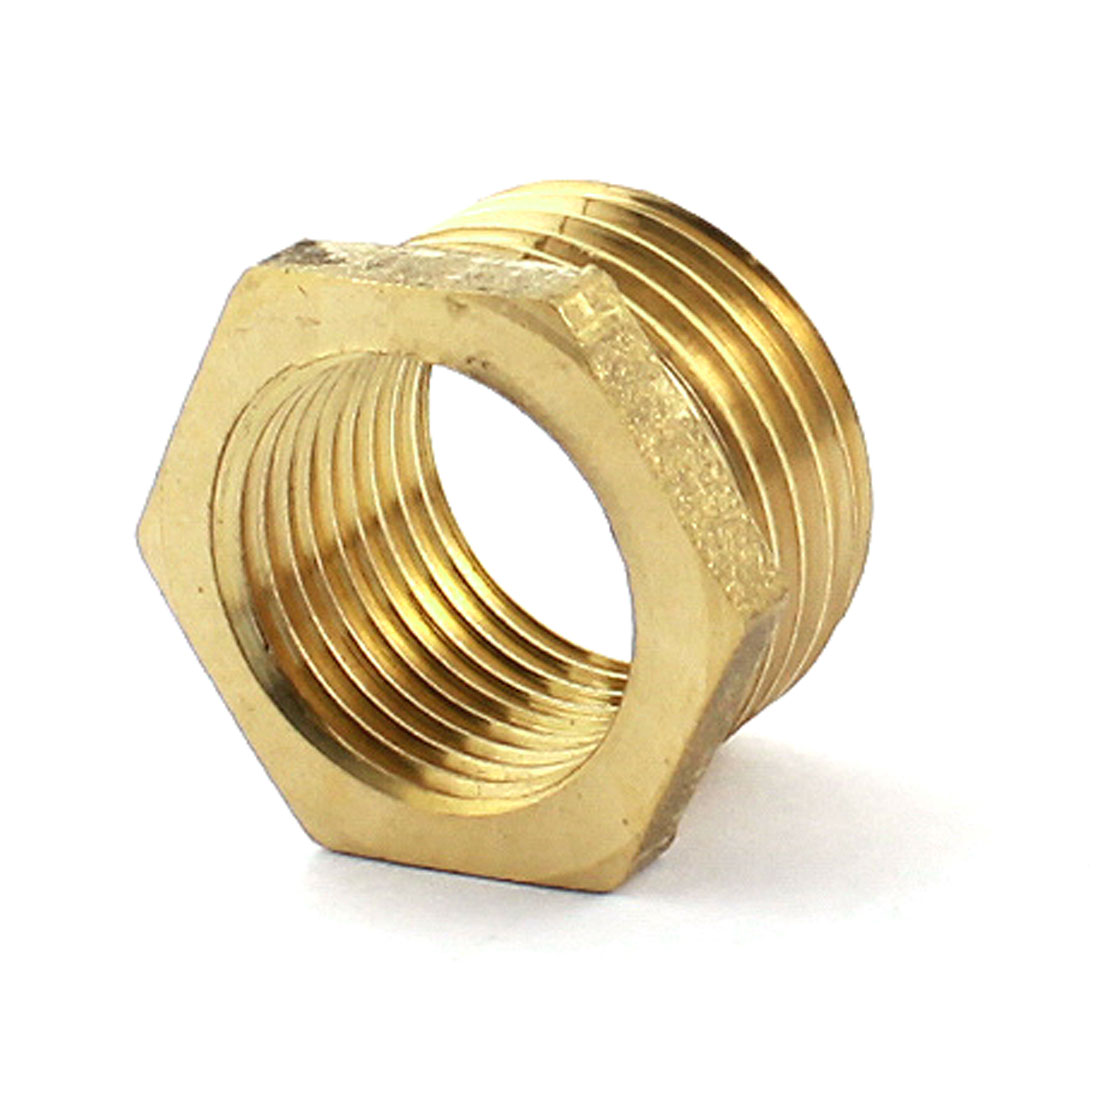 1/2 PT Male to 1/4 PT Female Hex Threaded Bushing Piping Connector Coupling